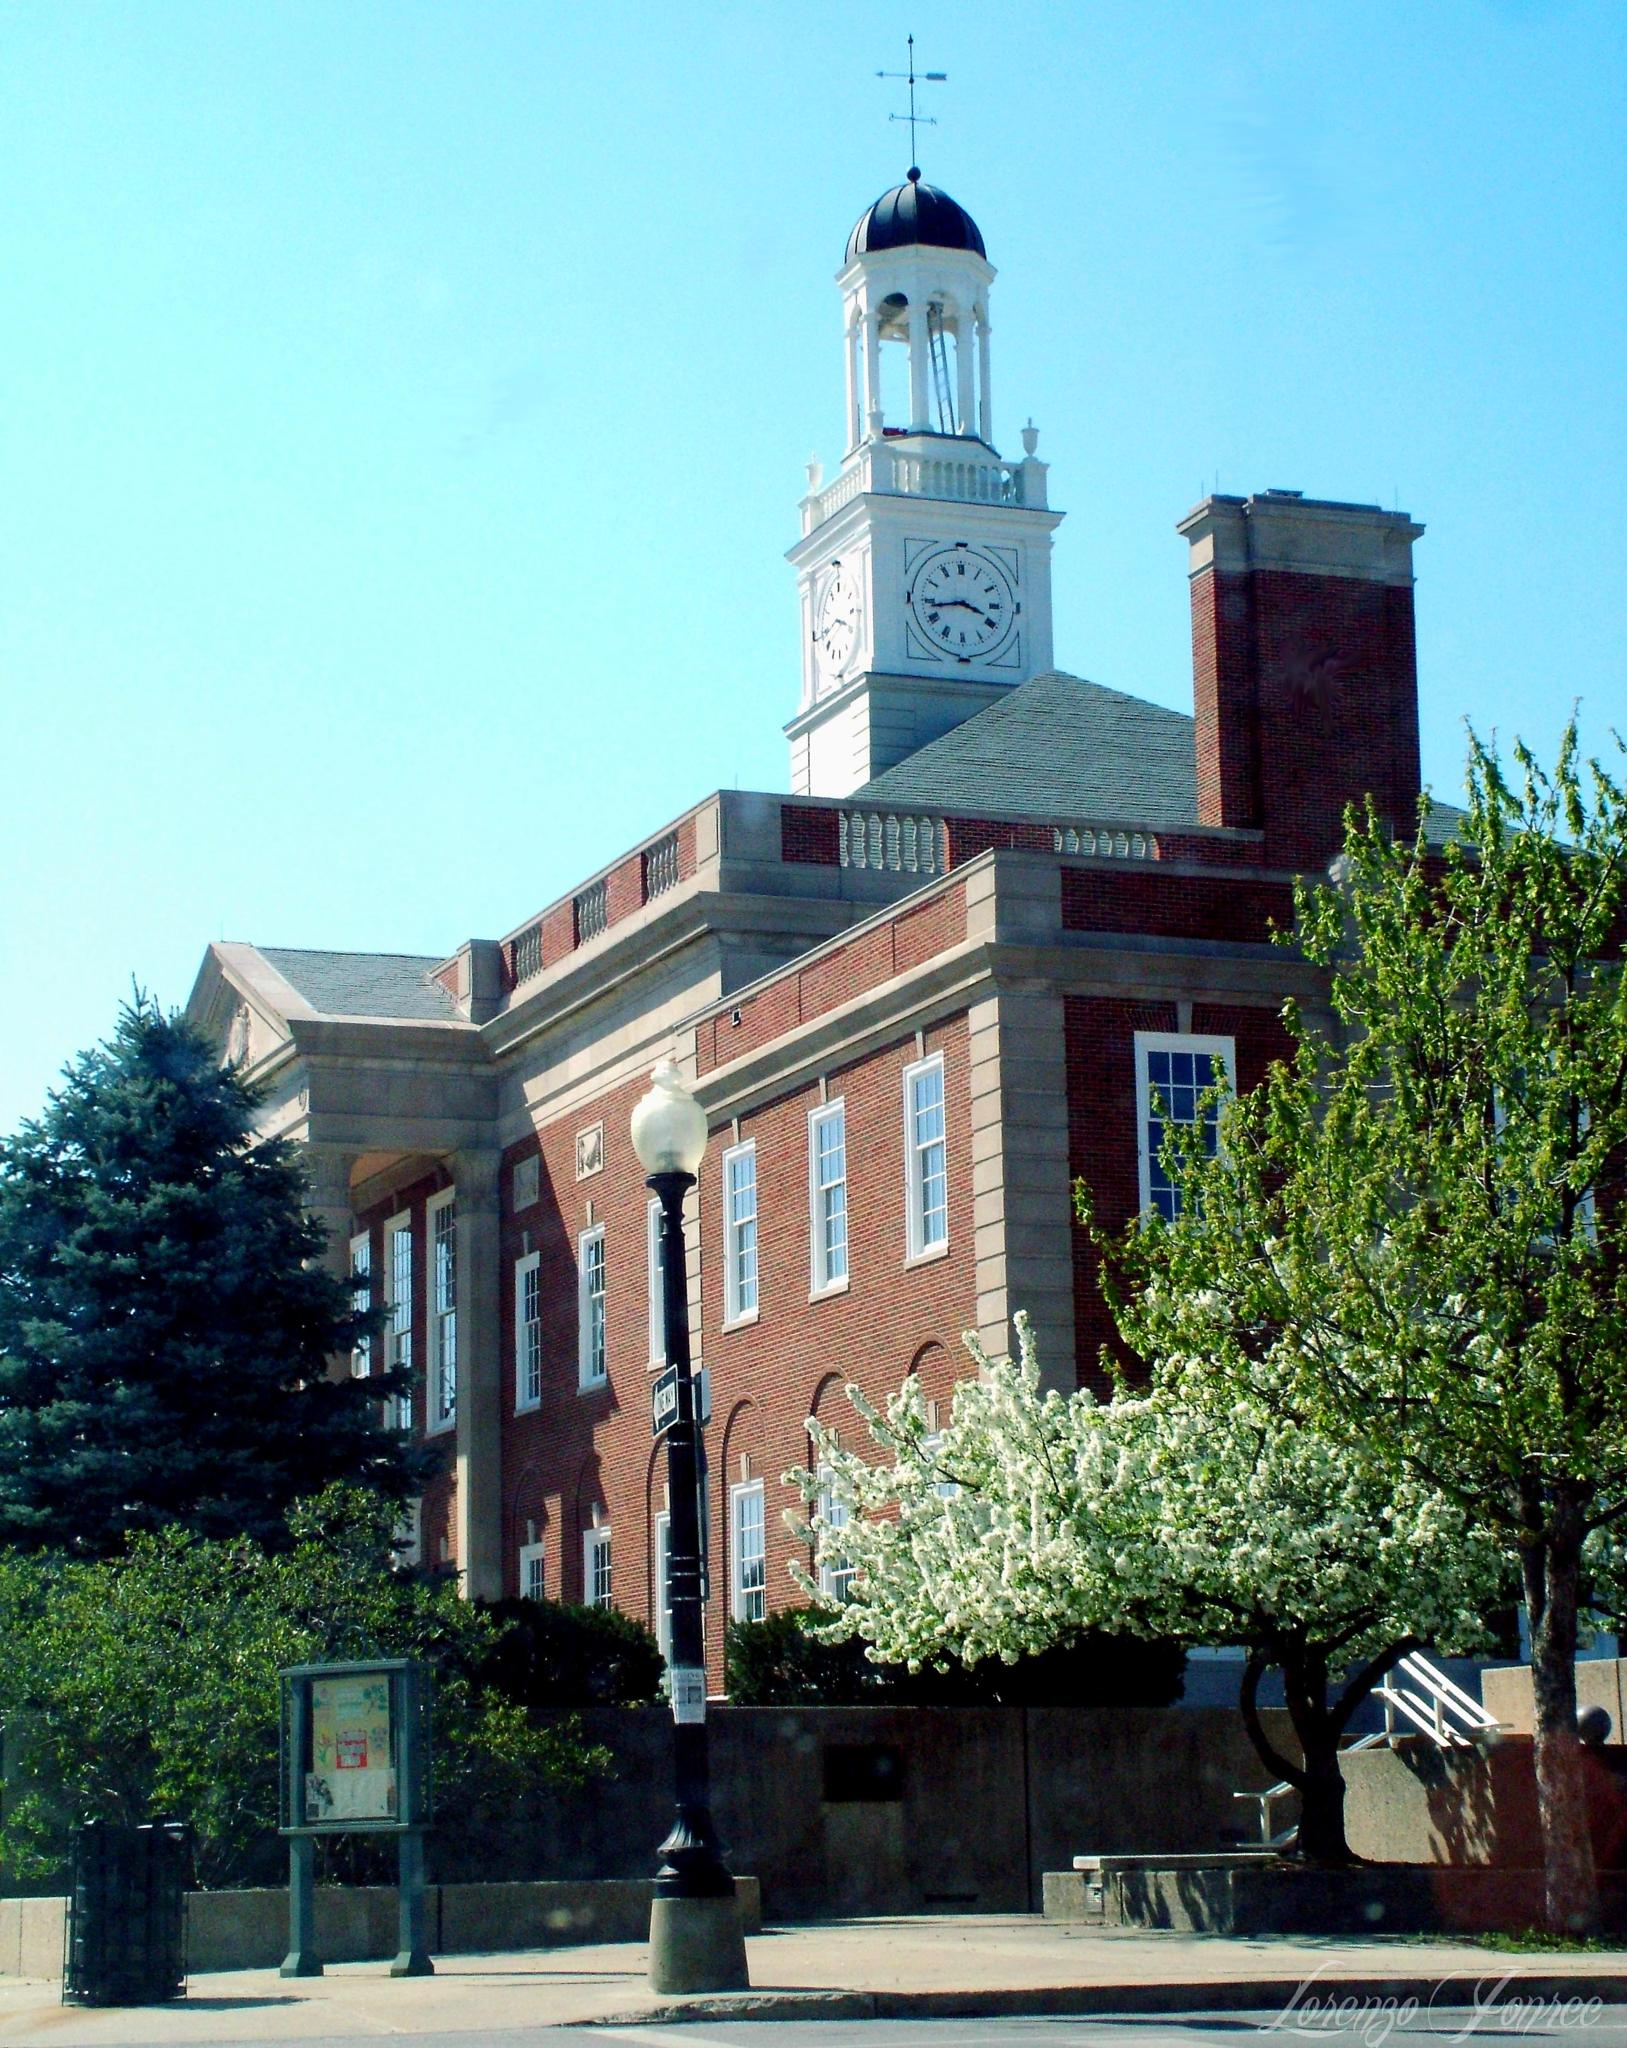 Truman Courthouse in Spring by Lorenzo (Larry) Jonree